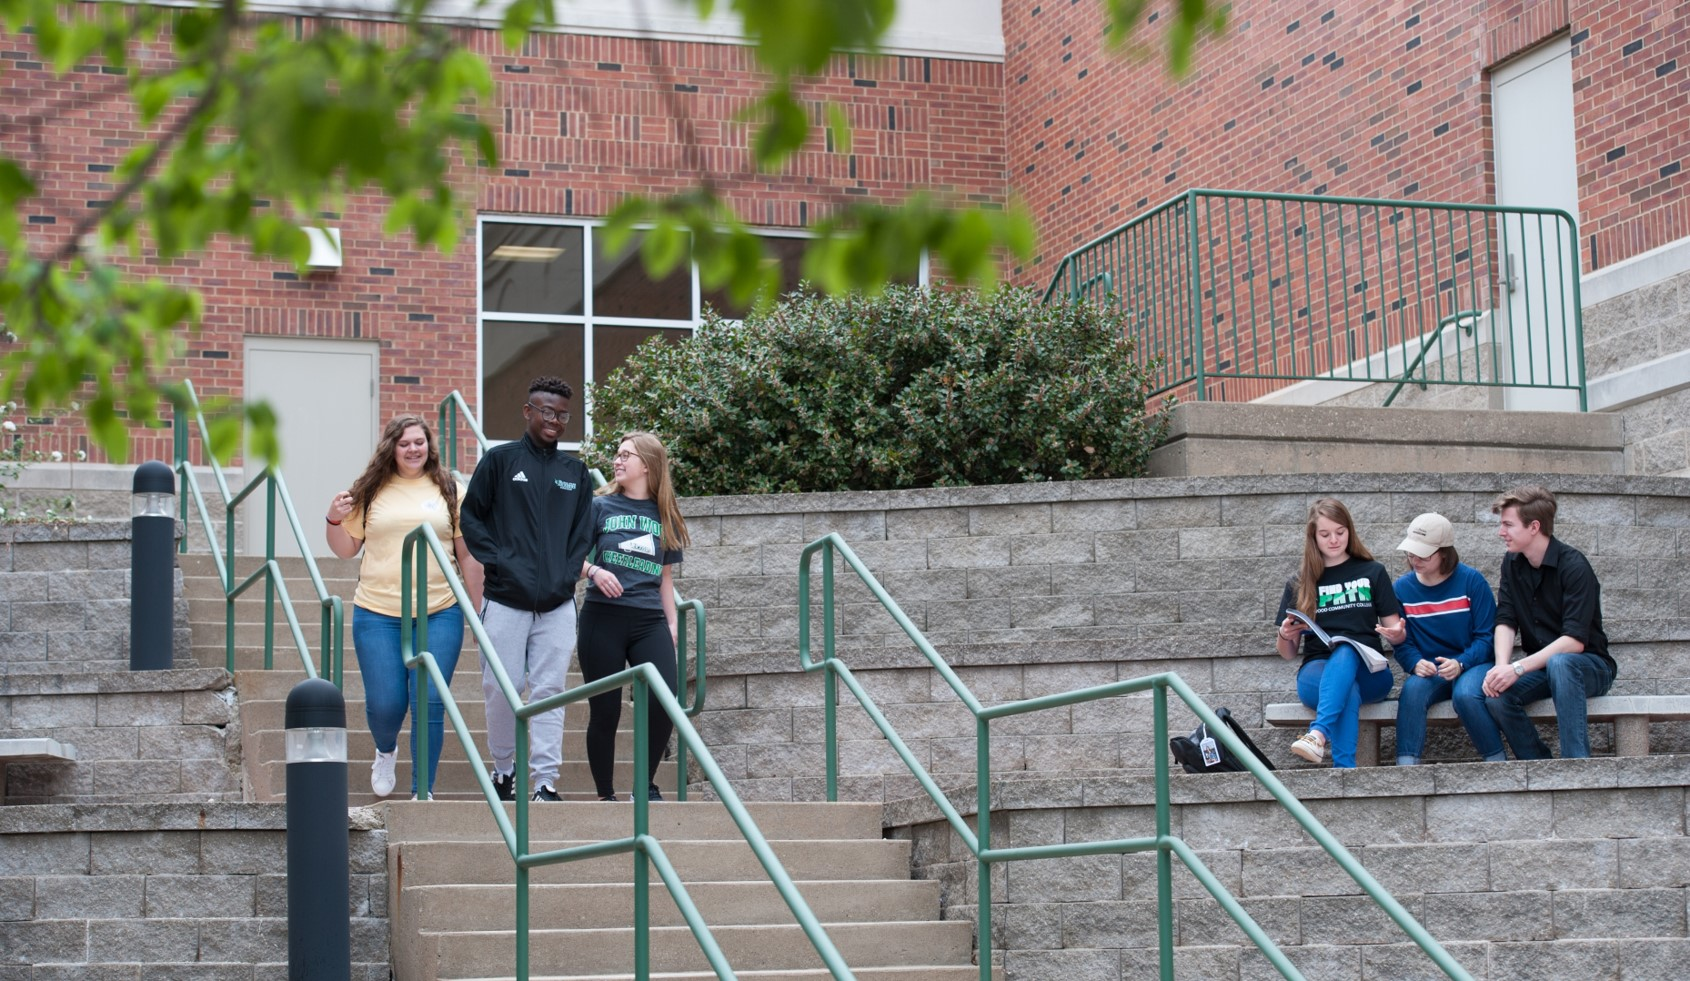 JWCC students walk down outside stairs on main campus